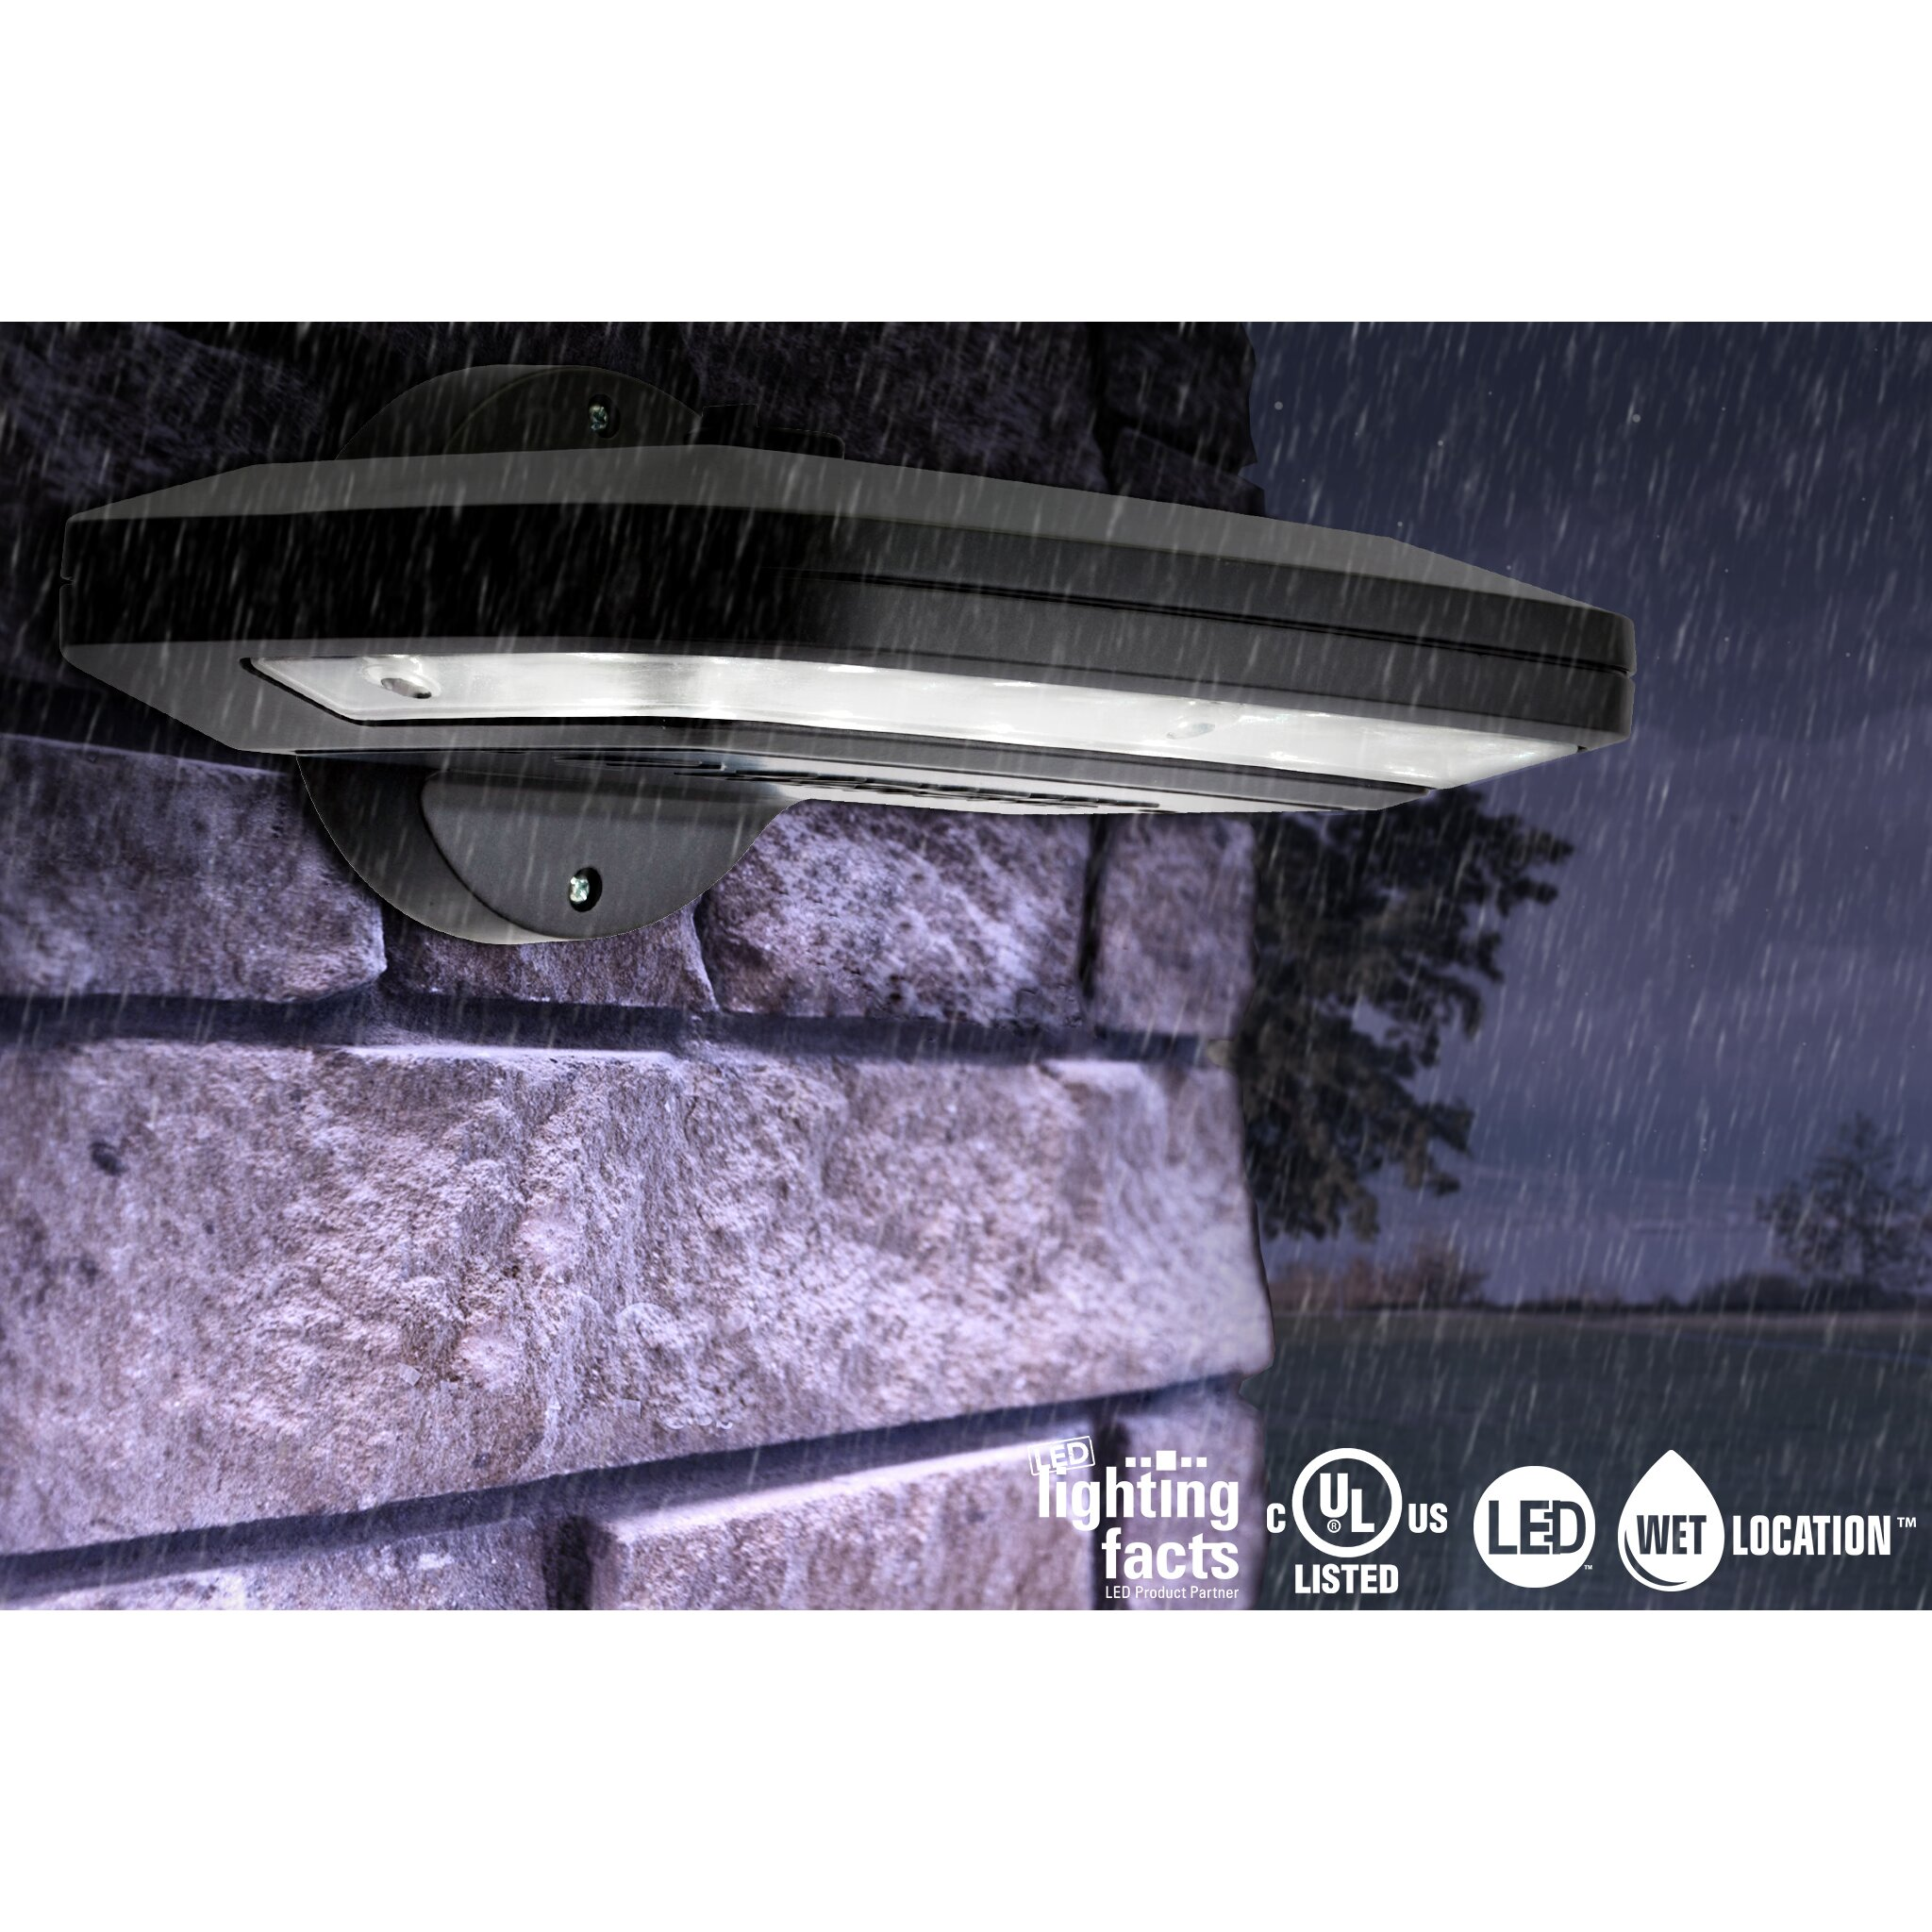 Lithonia Under Cabinet Lighting Lithonia Lighting Outdoor Led Wall Mount Area Light Reviews